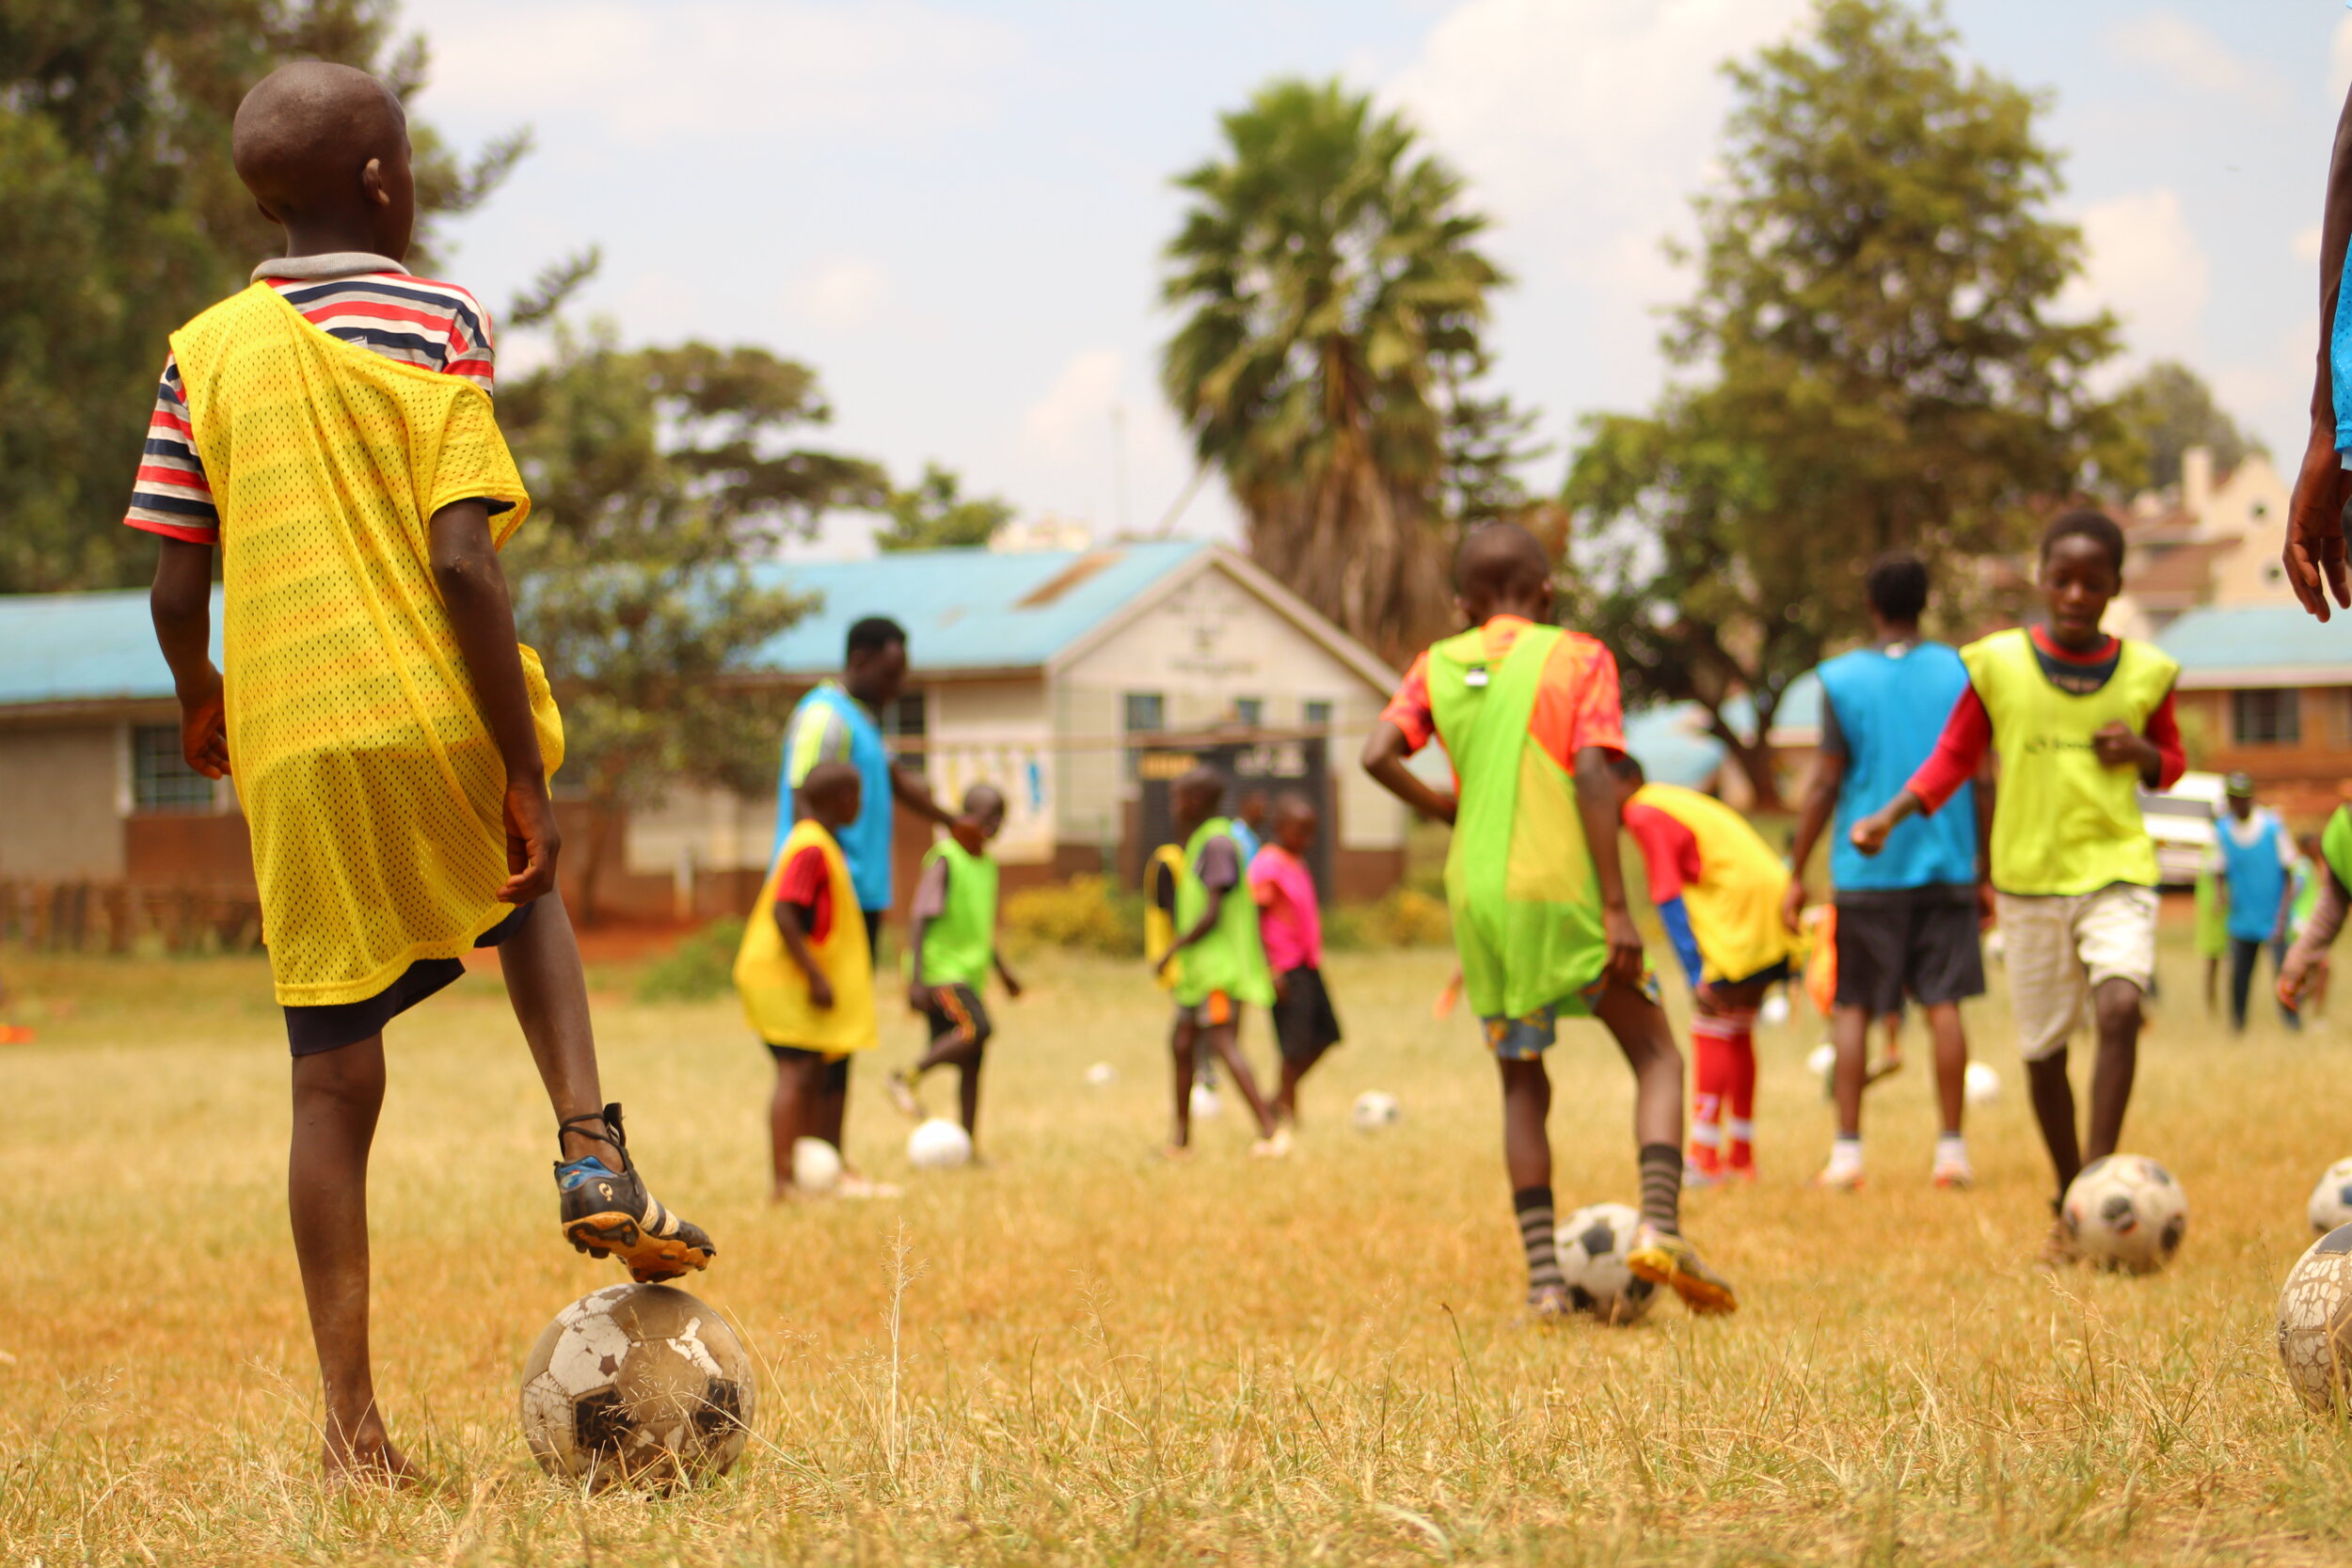 Kutoa Project Community Football Registration! - We aim to provide football clinic and camp opportunities for Kenyan youth throughout the year.If you are interested in attending or learning more about how to register, sponsor or volunteer at one of our events, we'd love to connect!